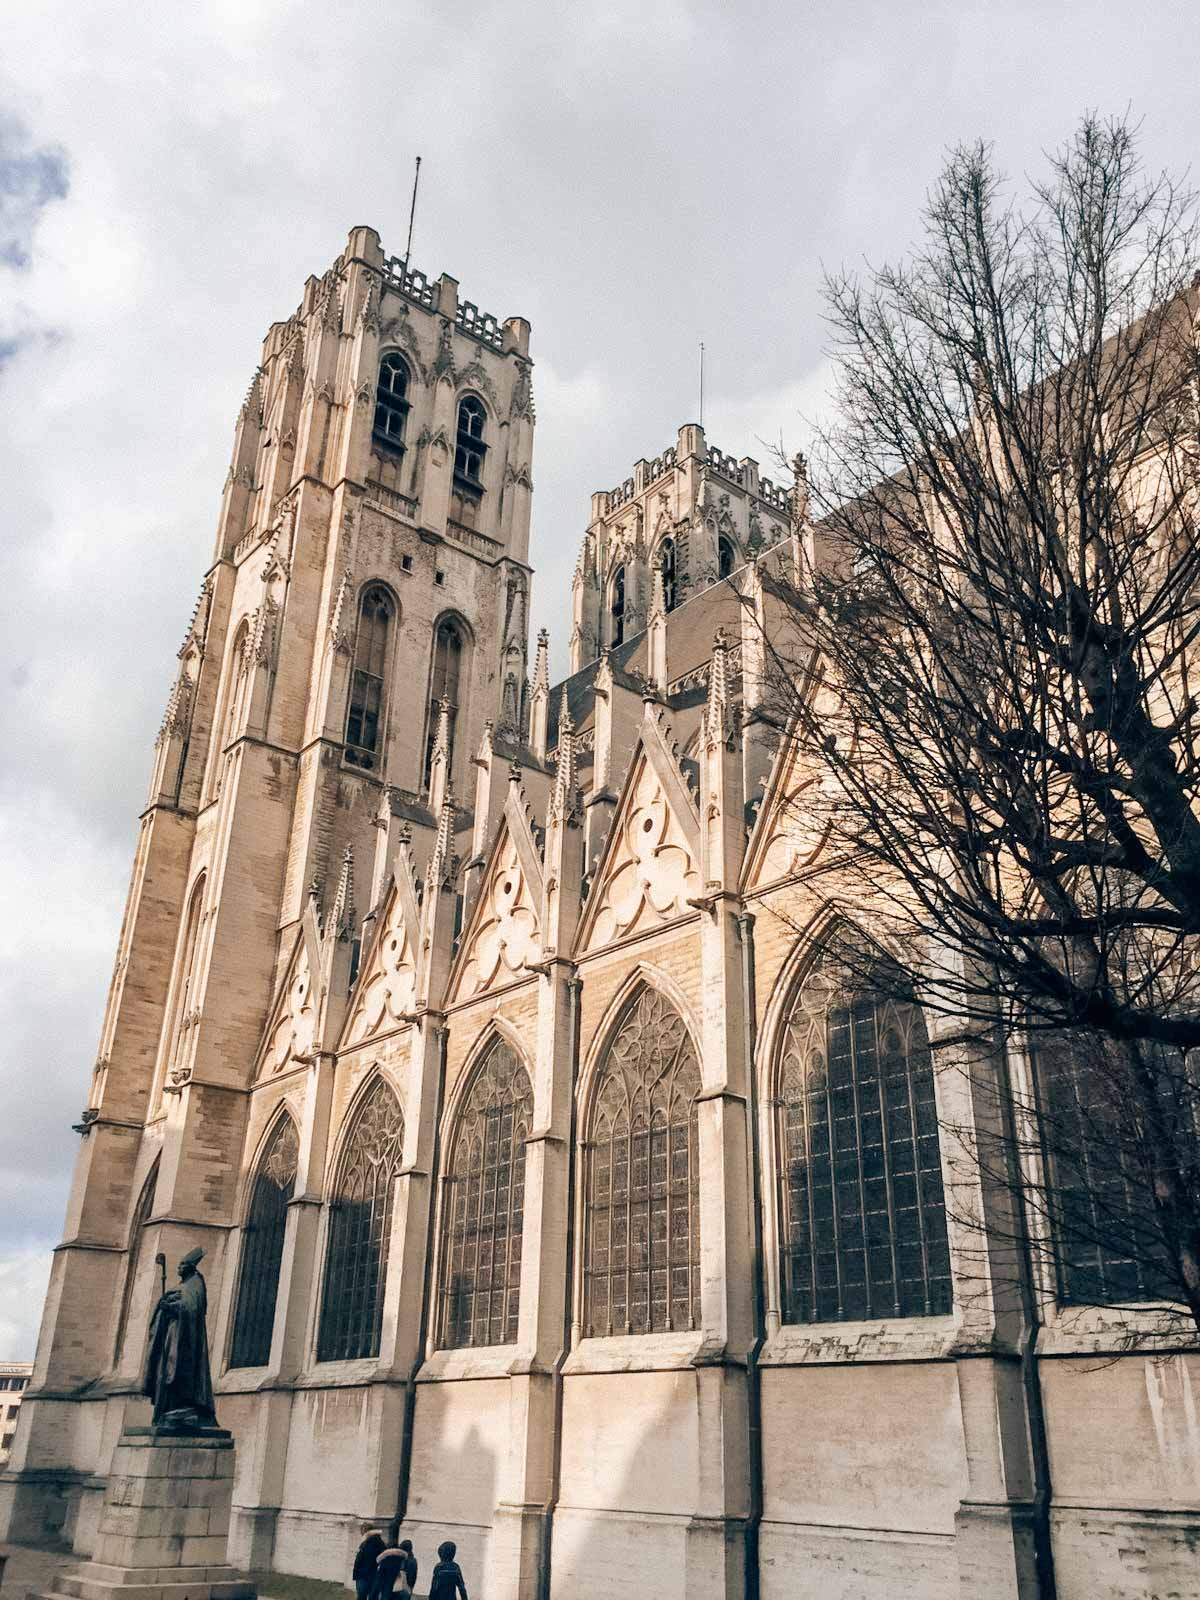 The cathederal of Brussels, a must-see